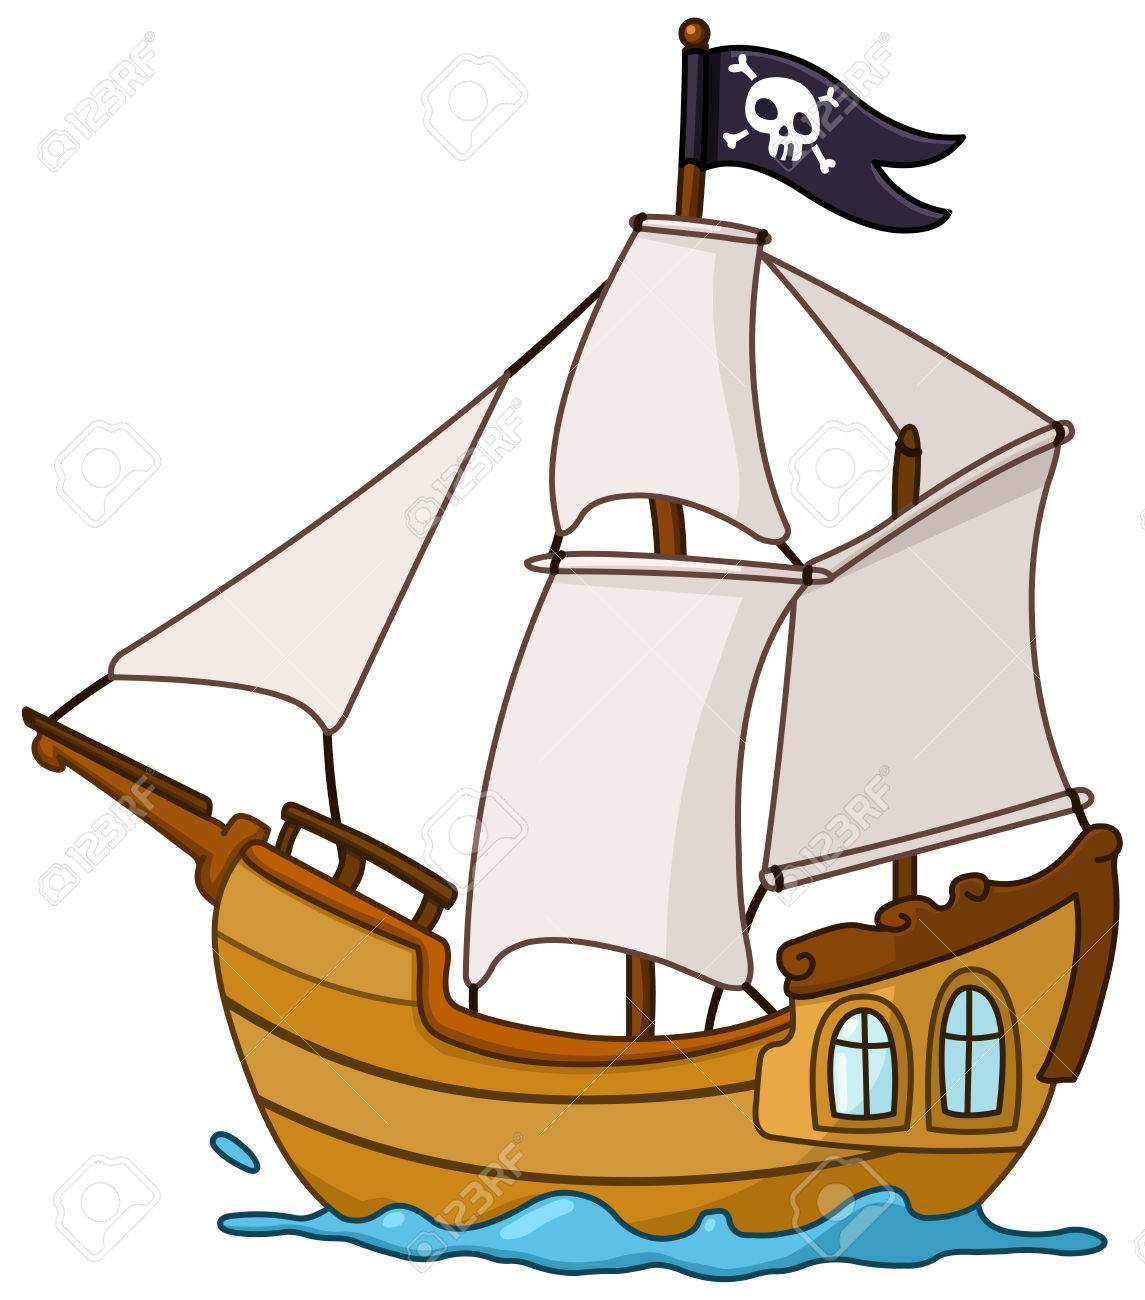 pirate ship royalty free cliparts vectors and stock illustration rh 123rf com